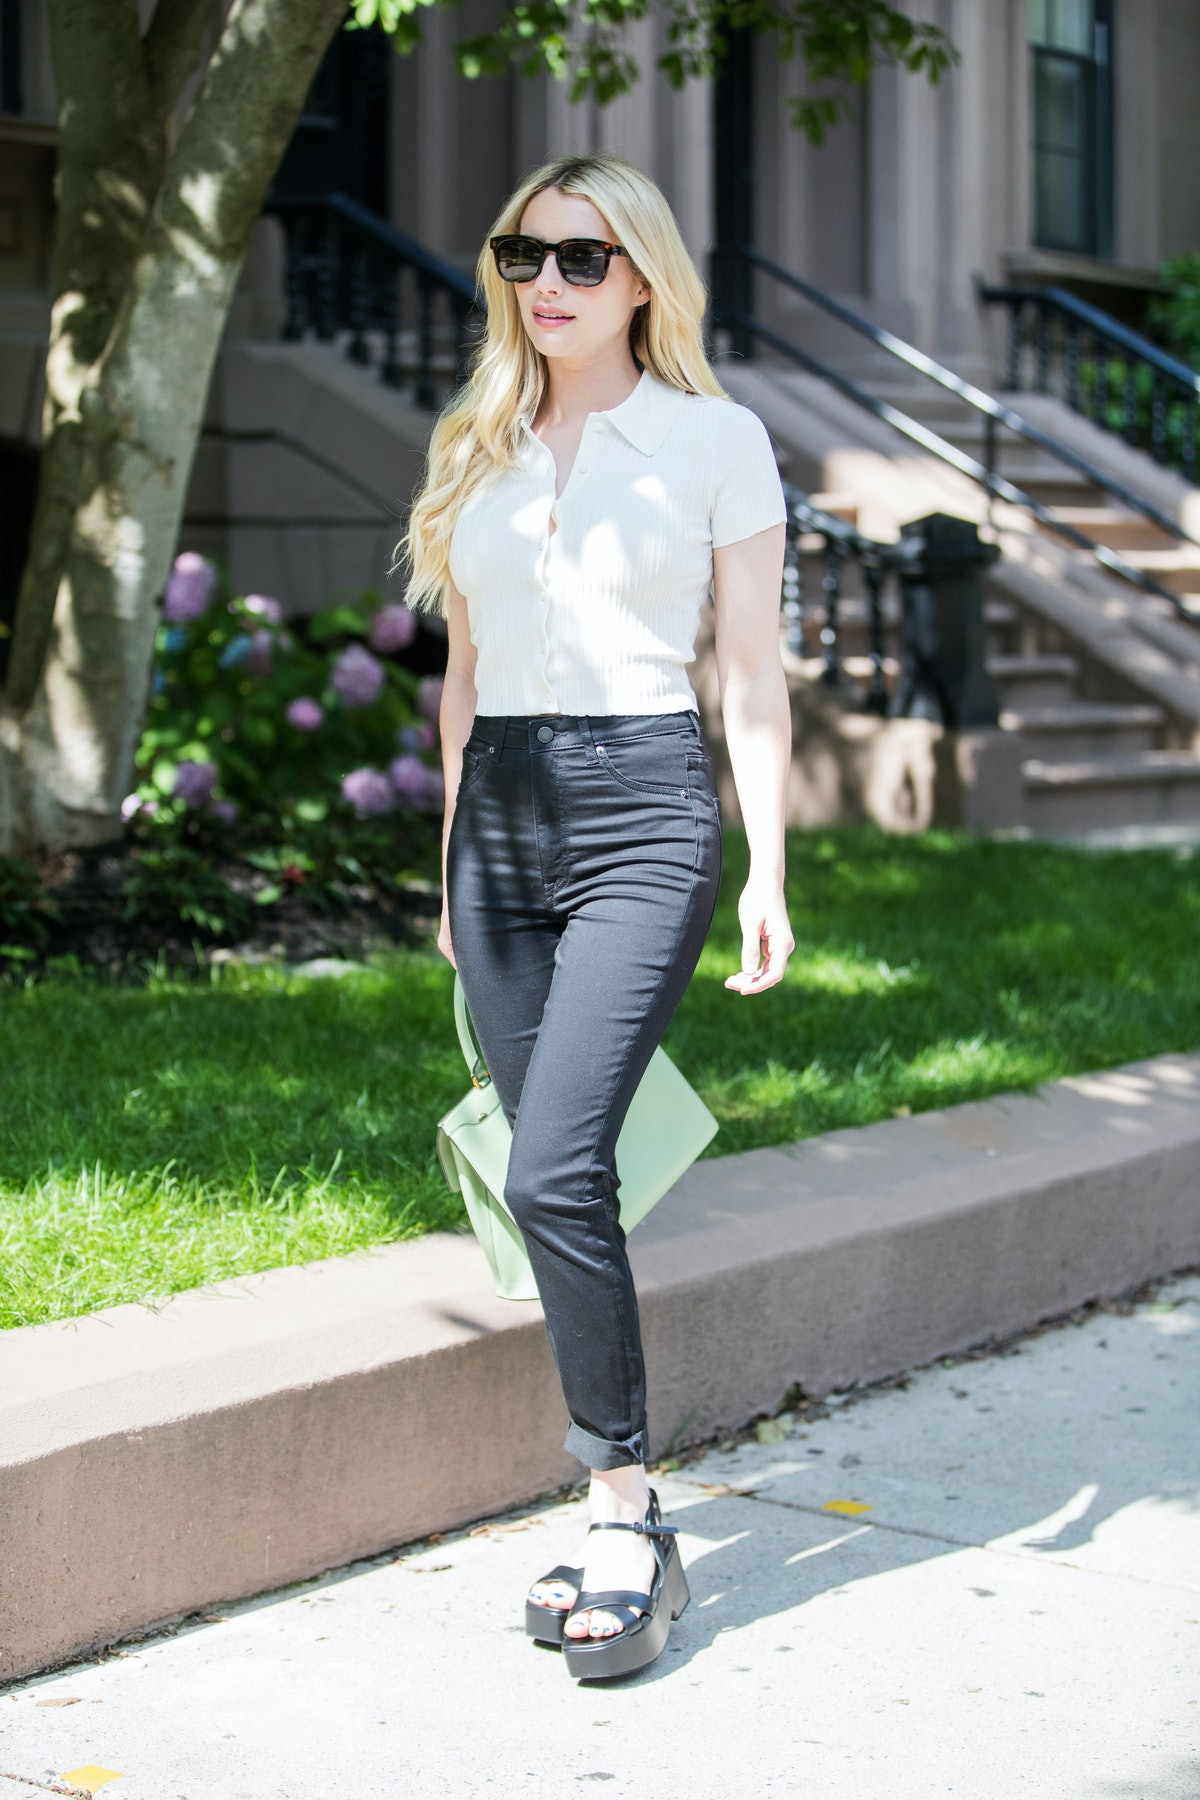 Emma Roberts in Boston, United States in July 2021.